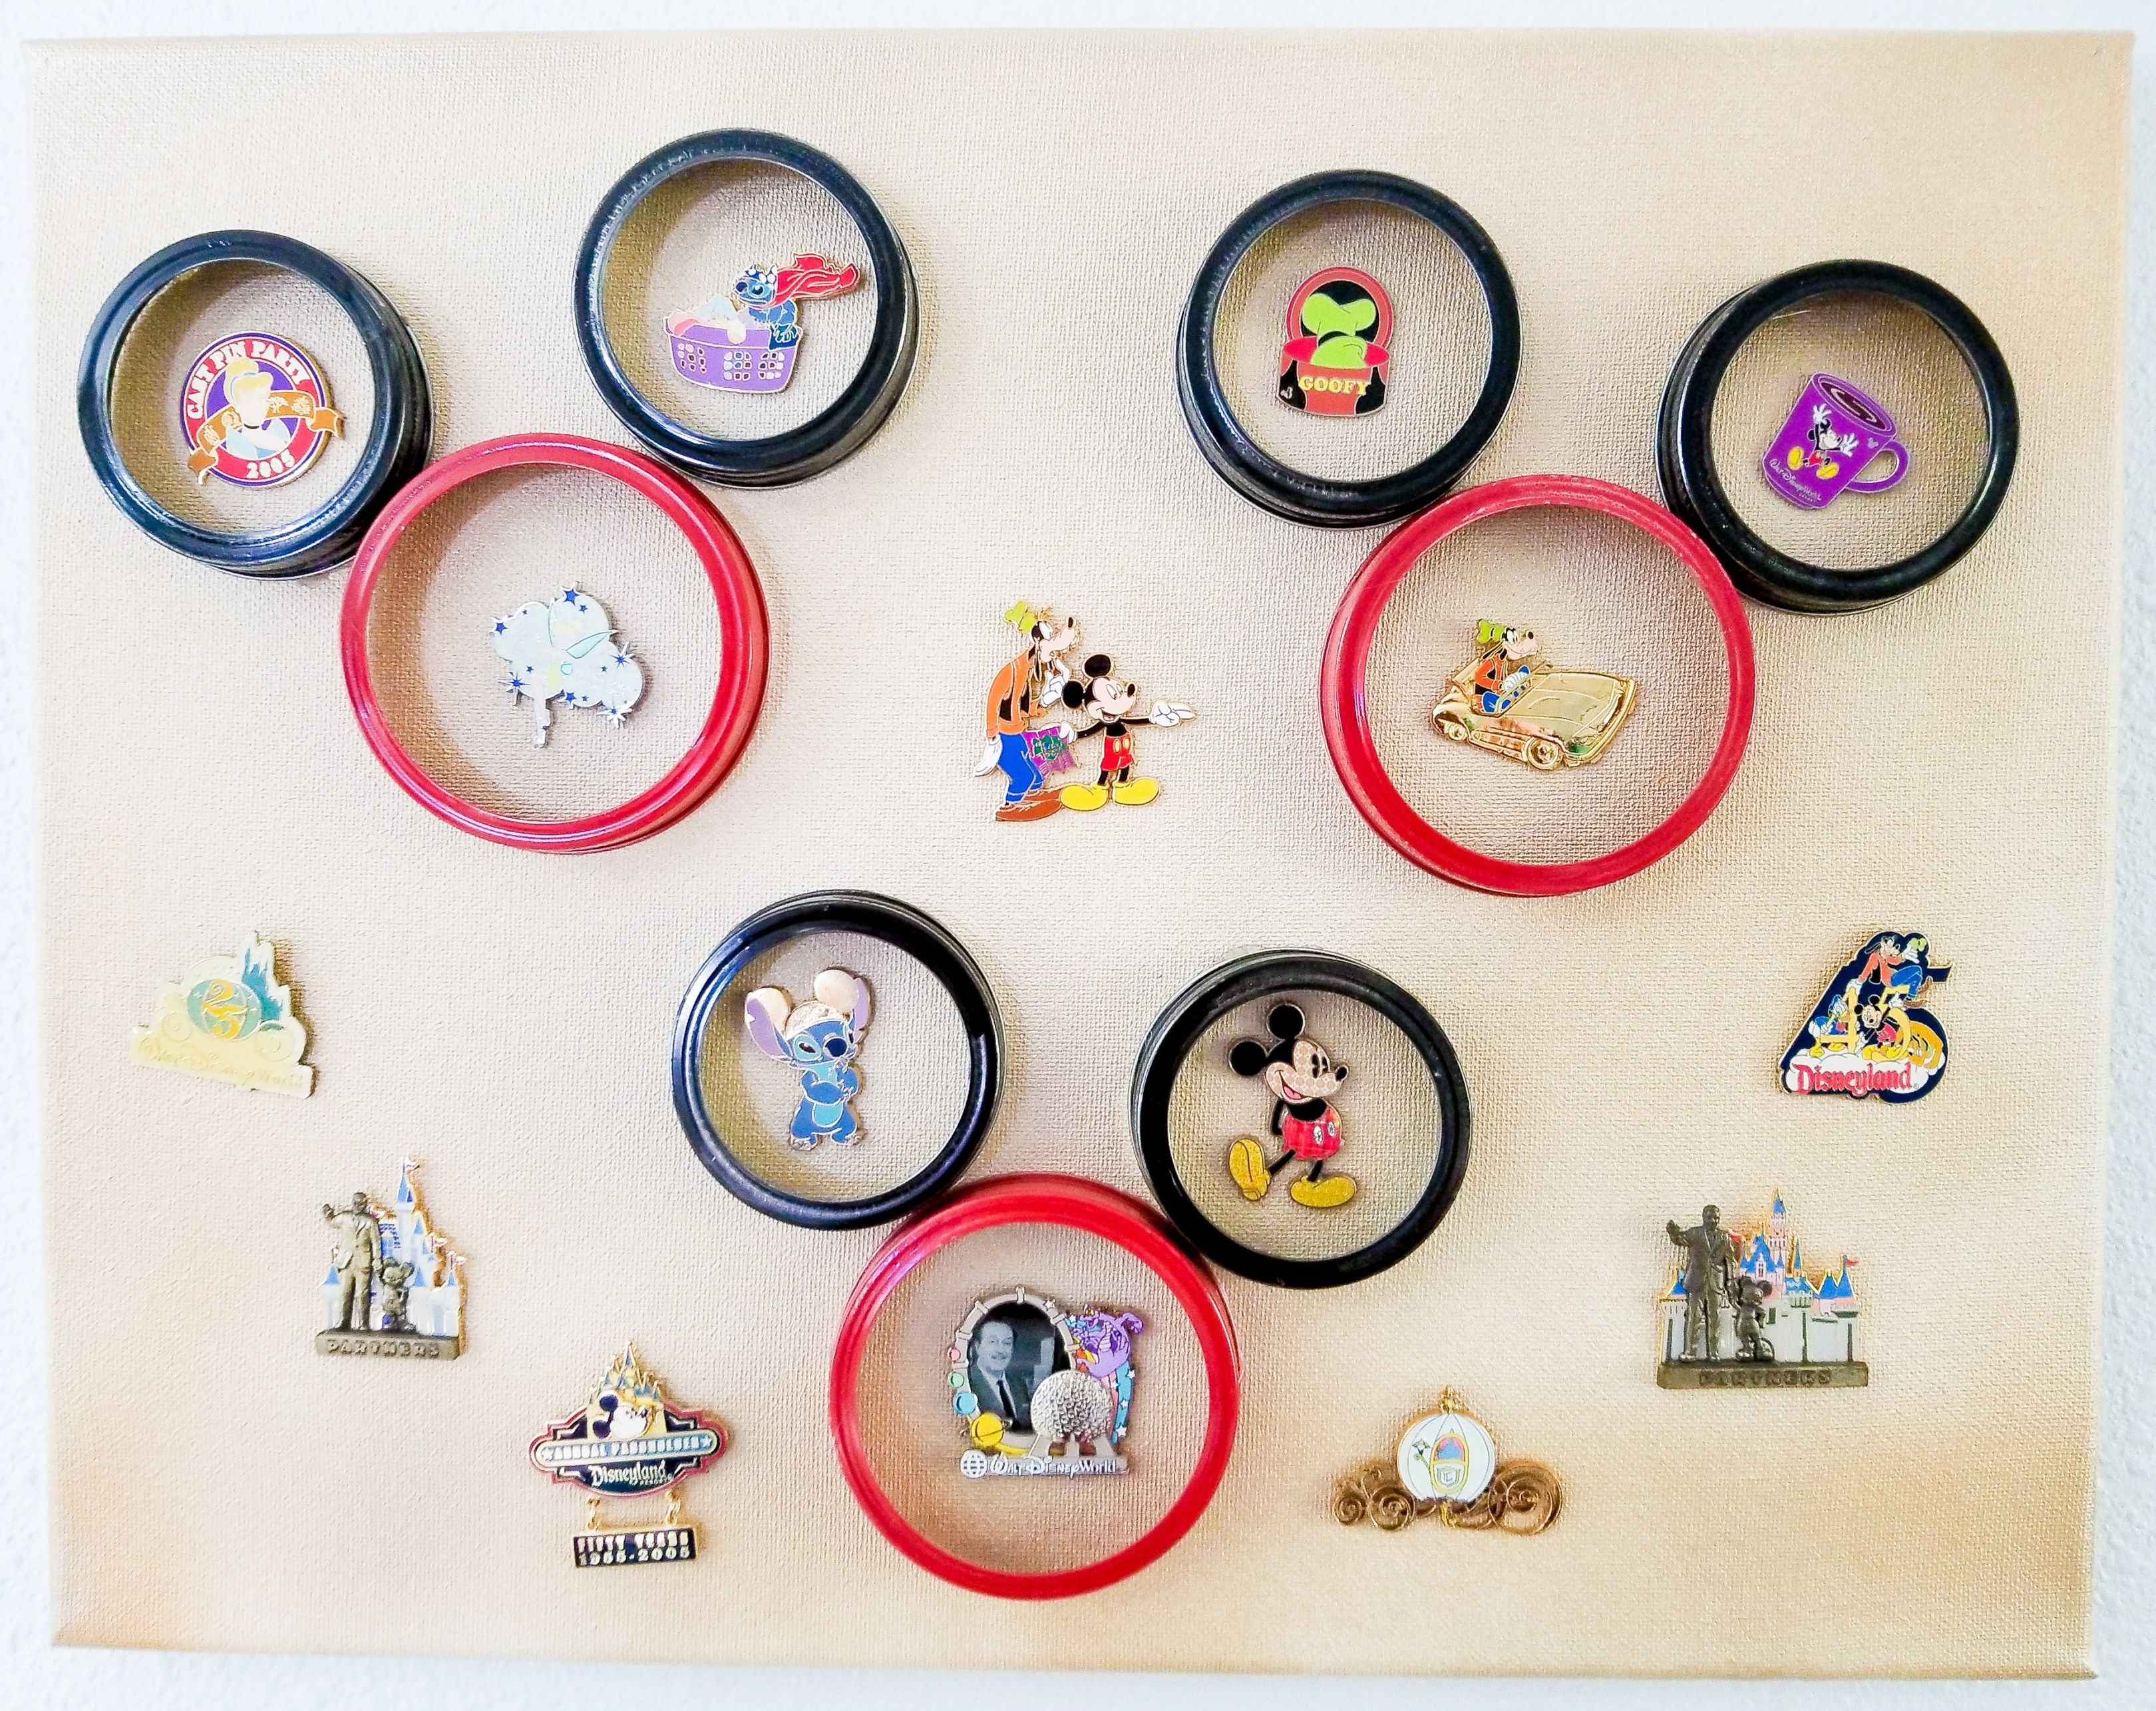 DIY Disney Pin Board - Disney Pin Display Idea | Brought to You by ...